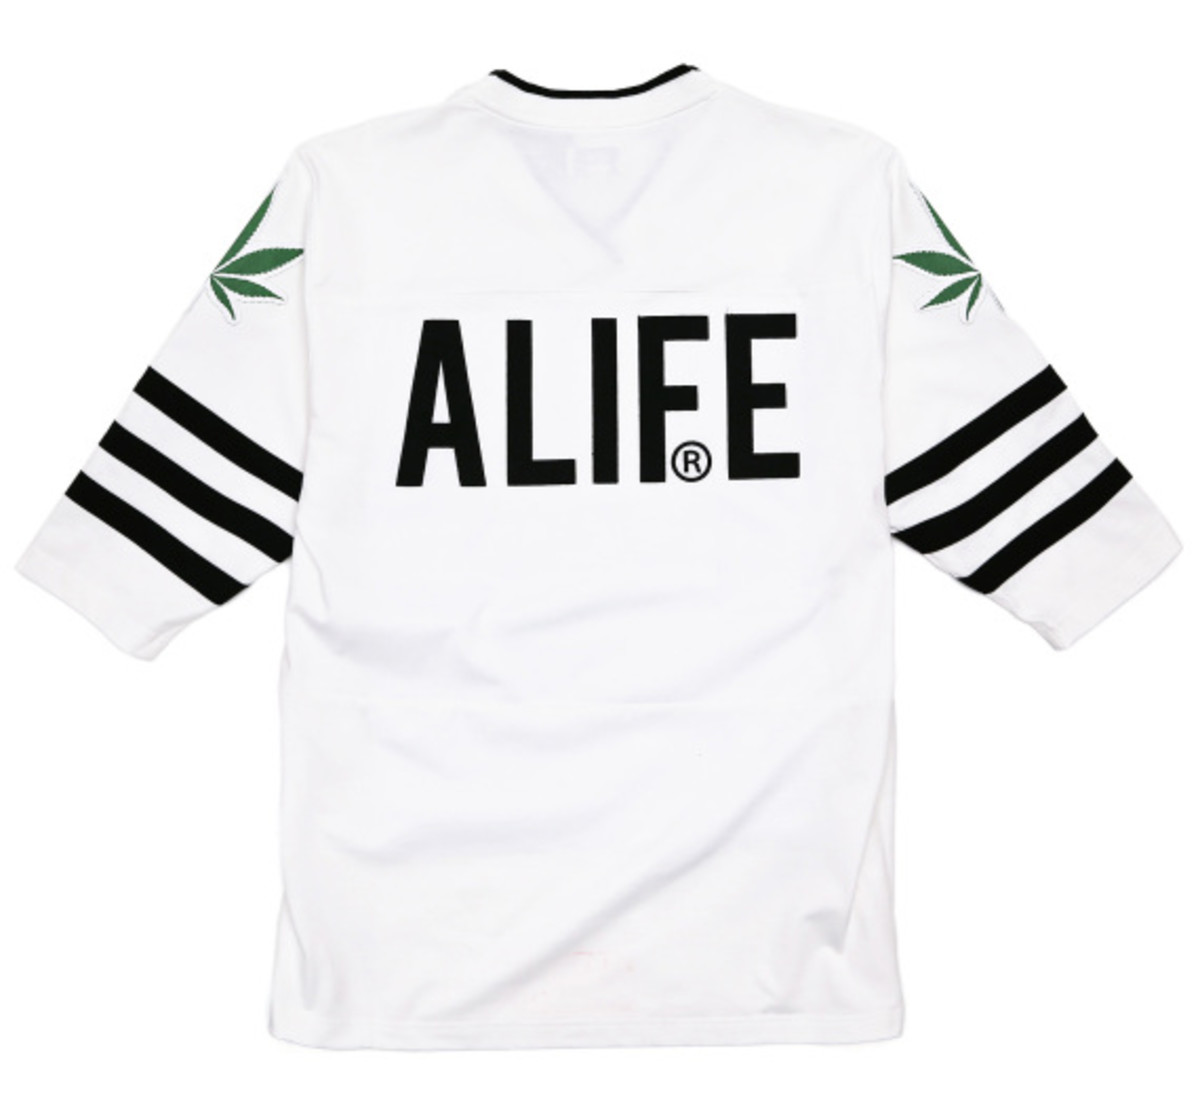 ALIFE - Holiday 2014 Collection Lookbook - 26